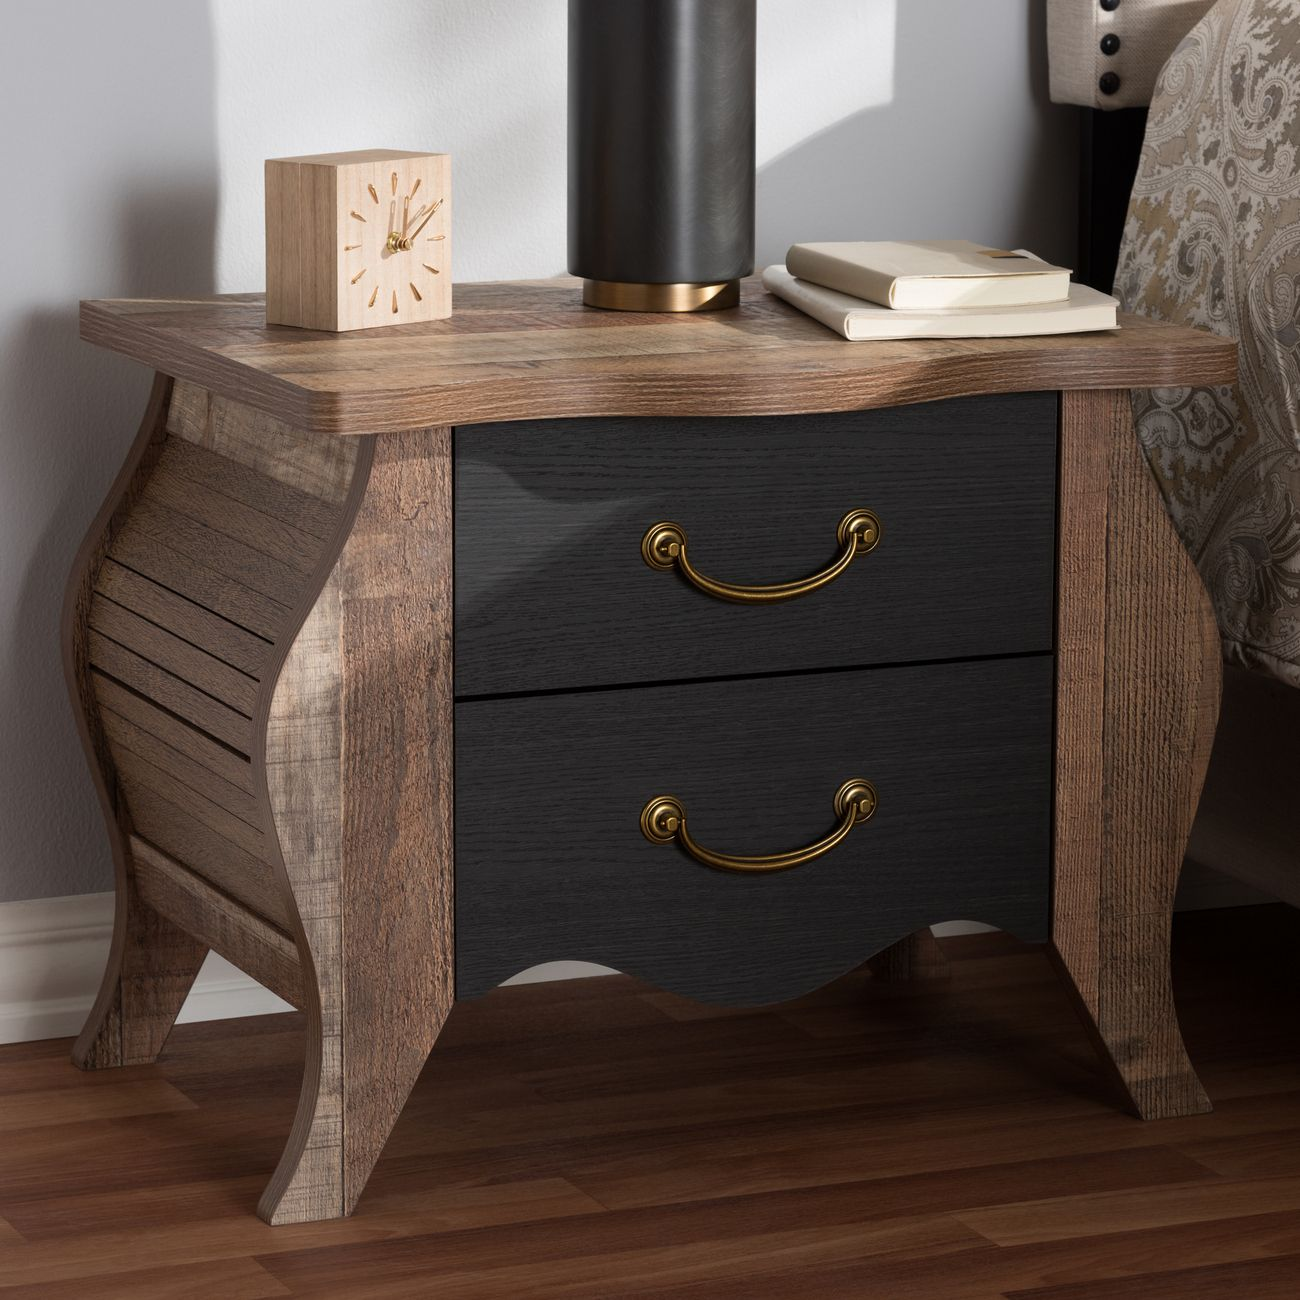 Baxton Studio Romilly Country Cottage Farmhouse Black Oak Finished Wood 2 Drawer Nightstand Br990063 Black Oak 2dw Ns